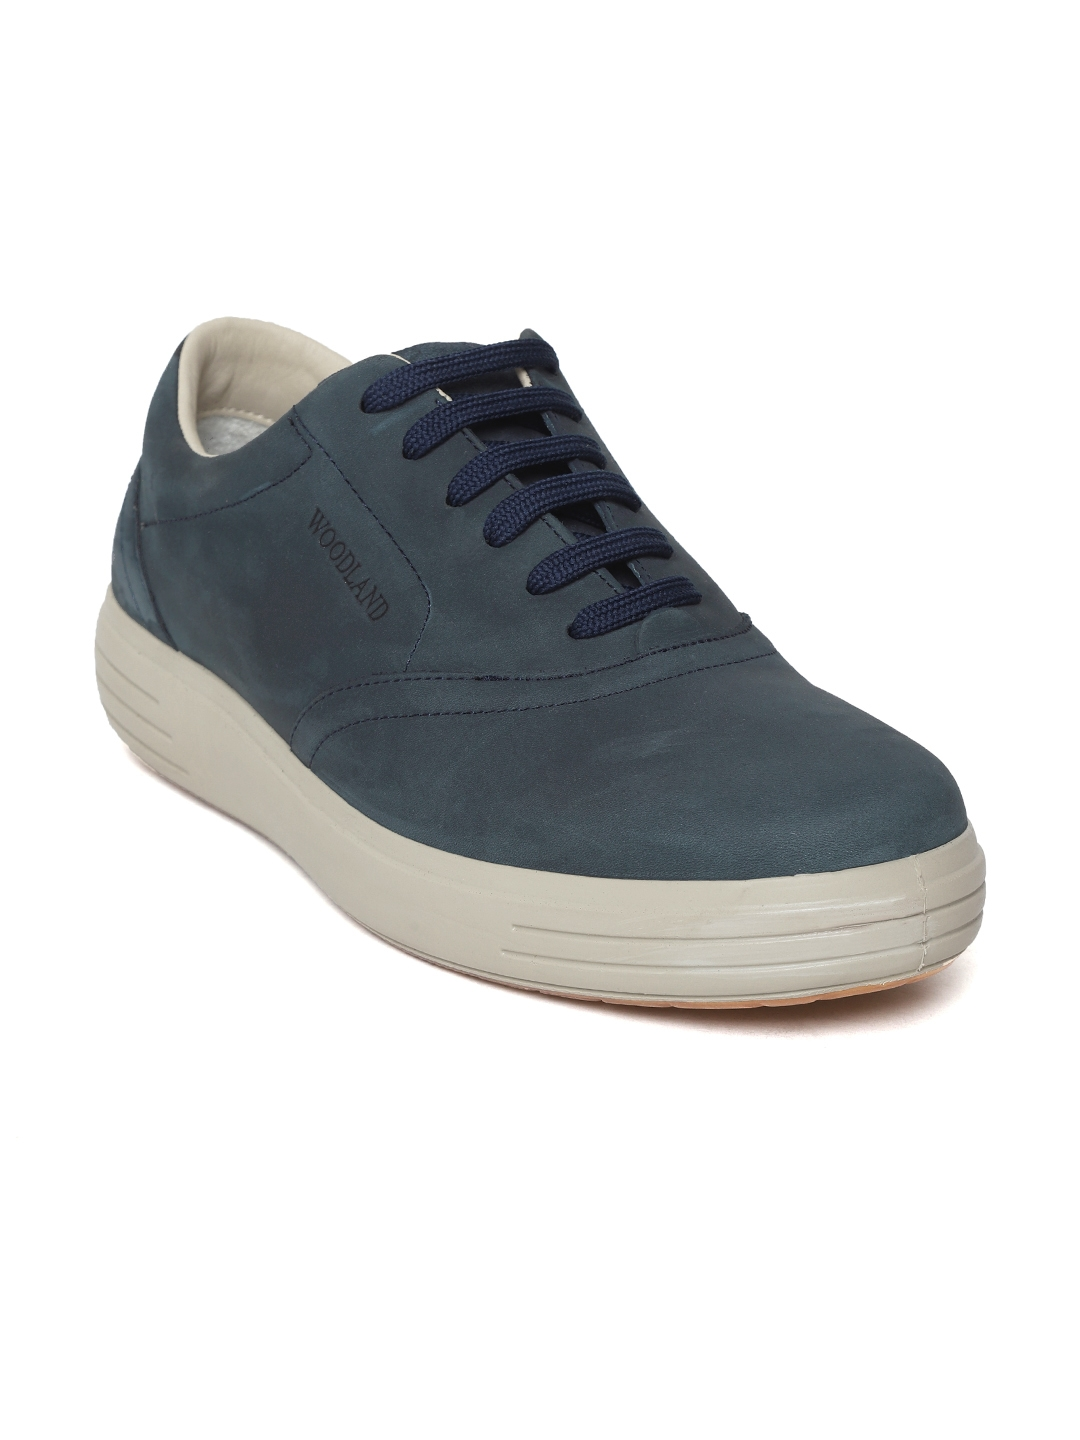 Woodland Men Navy Blue Leather Sneakers